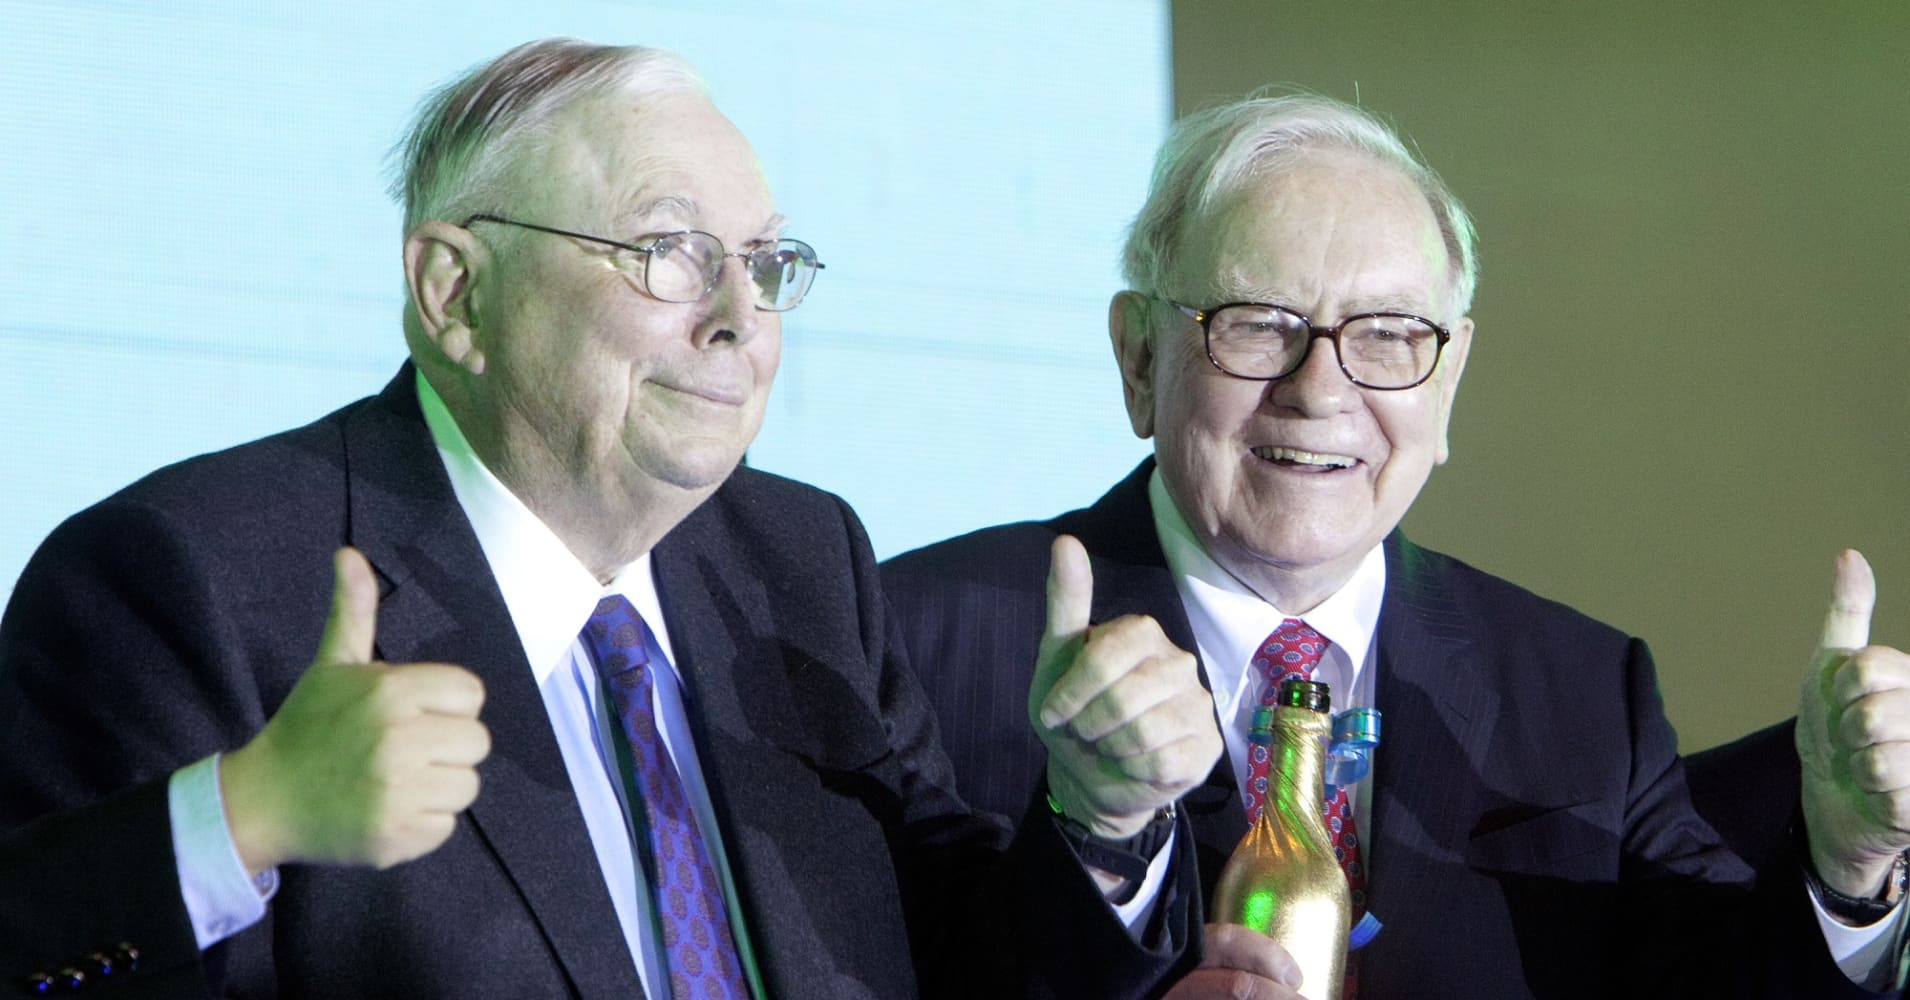 Charles Munger, vice chairman of Berkshire Hathaway Inc., left, and Warren Buffett, chairman of Berkshire Hathaway Inc., attend a BYD Co. press event in China, on Monday, Sept. 27, 2010.